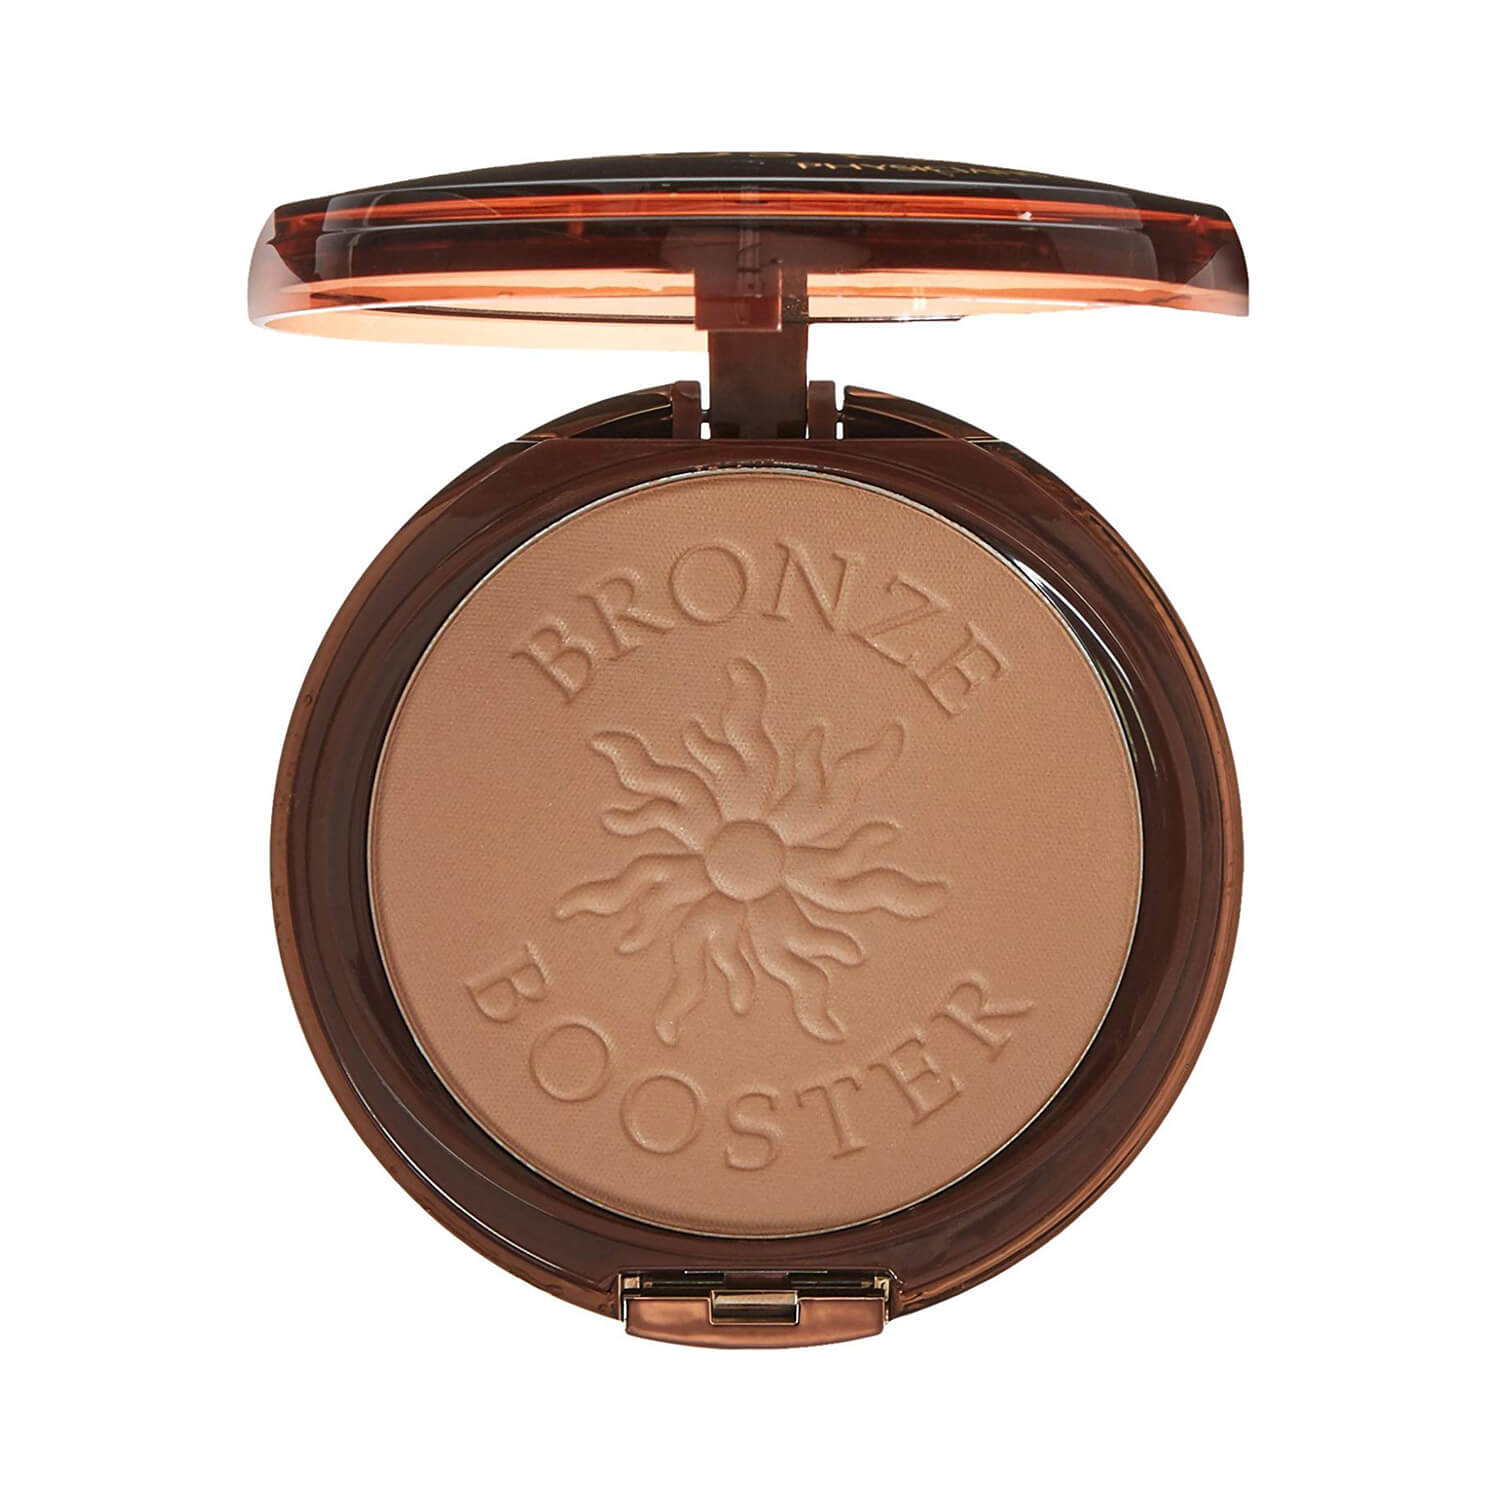 Physicians Formula Bronze Booster Glow-Boosting Pressed Bronzer Light to Medium